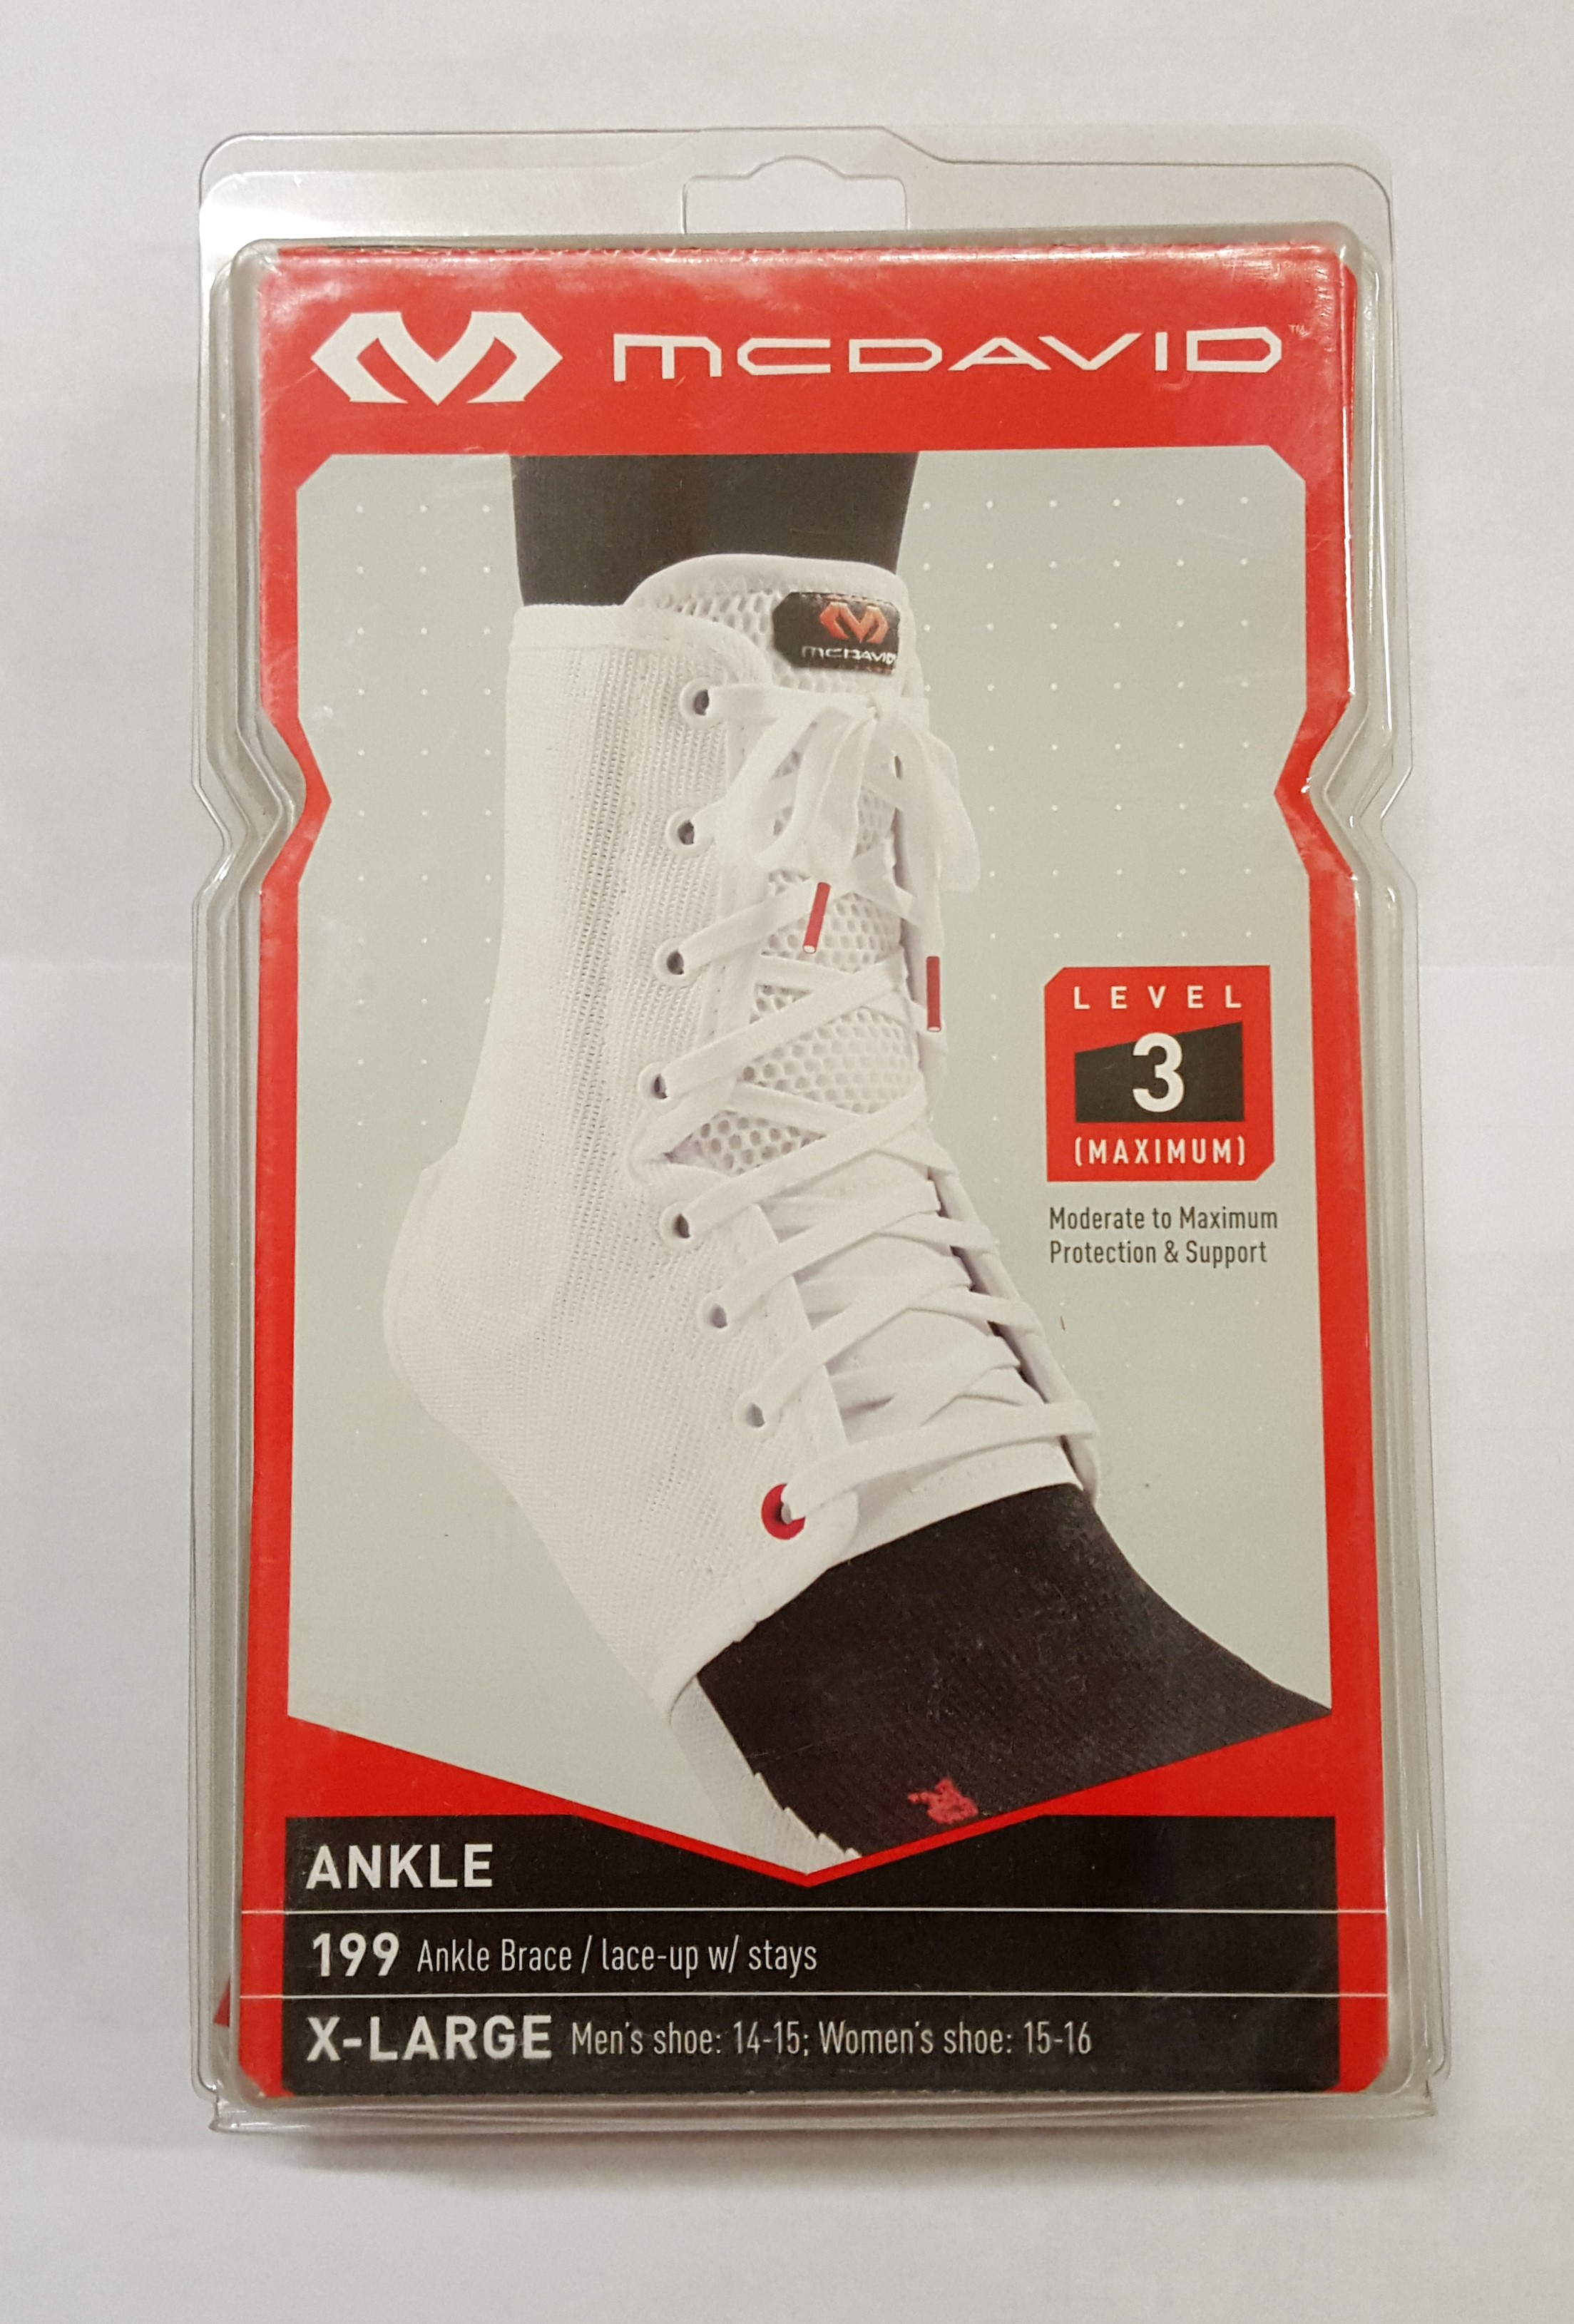 McDavid Ankle Brace White Small 199RS